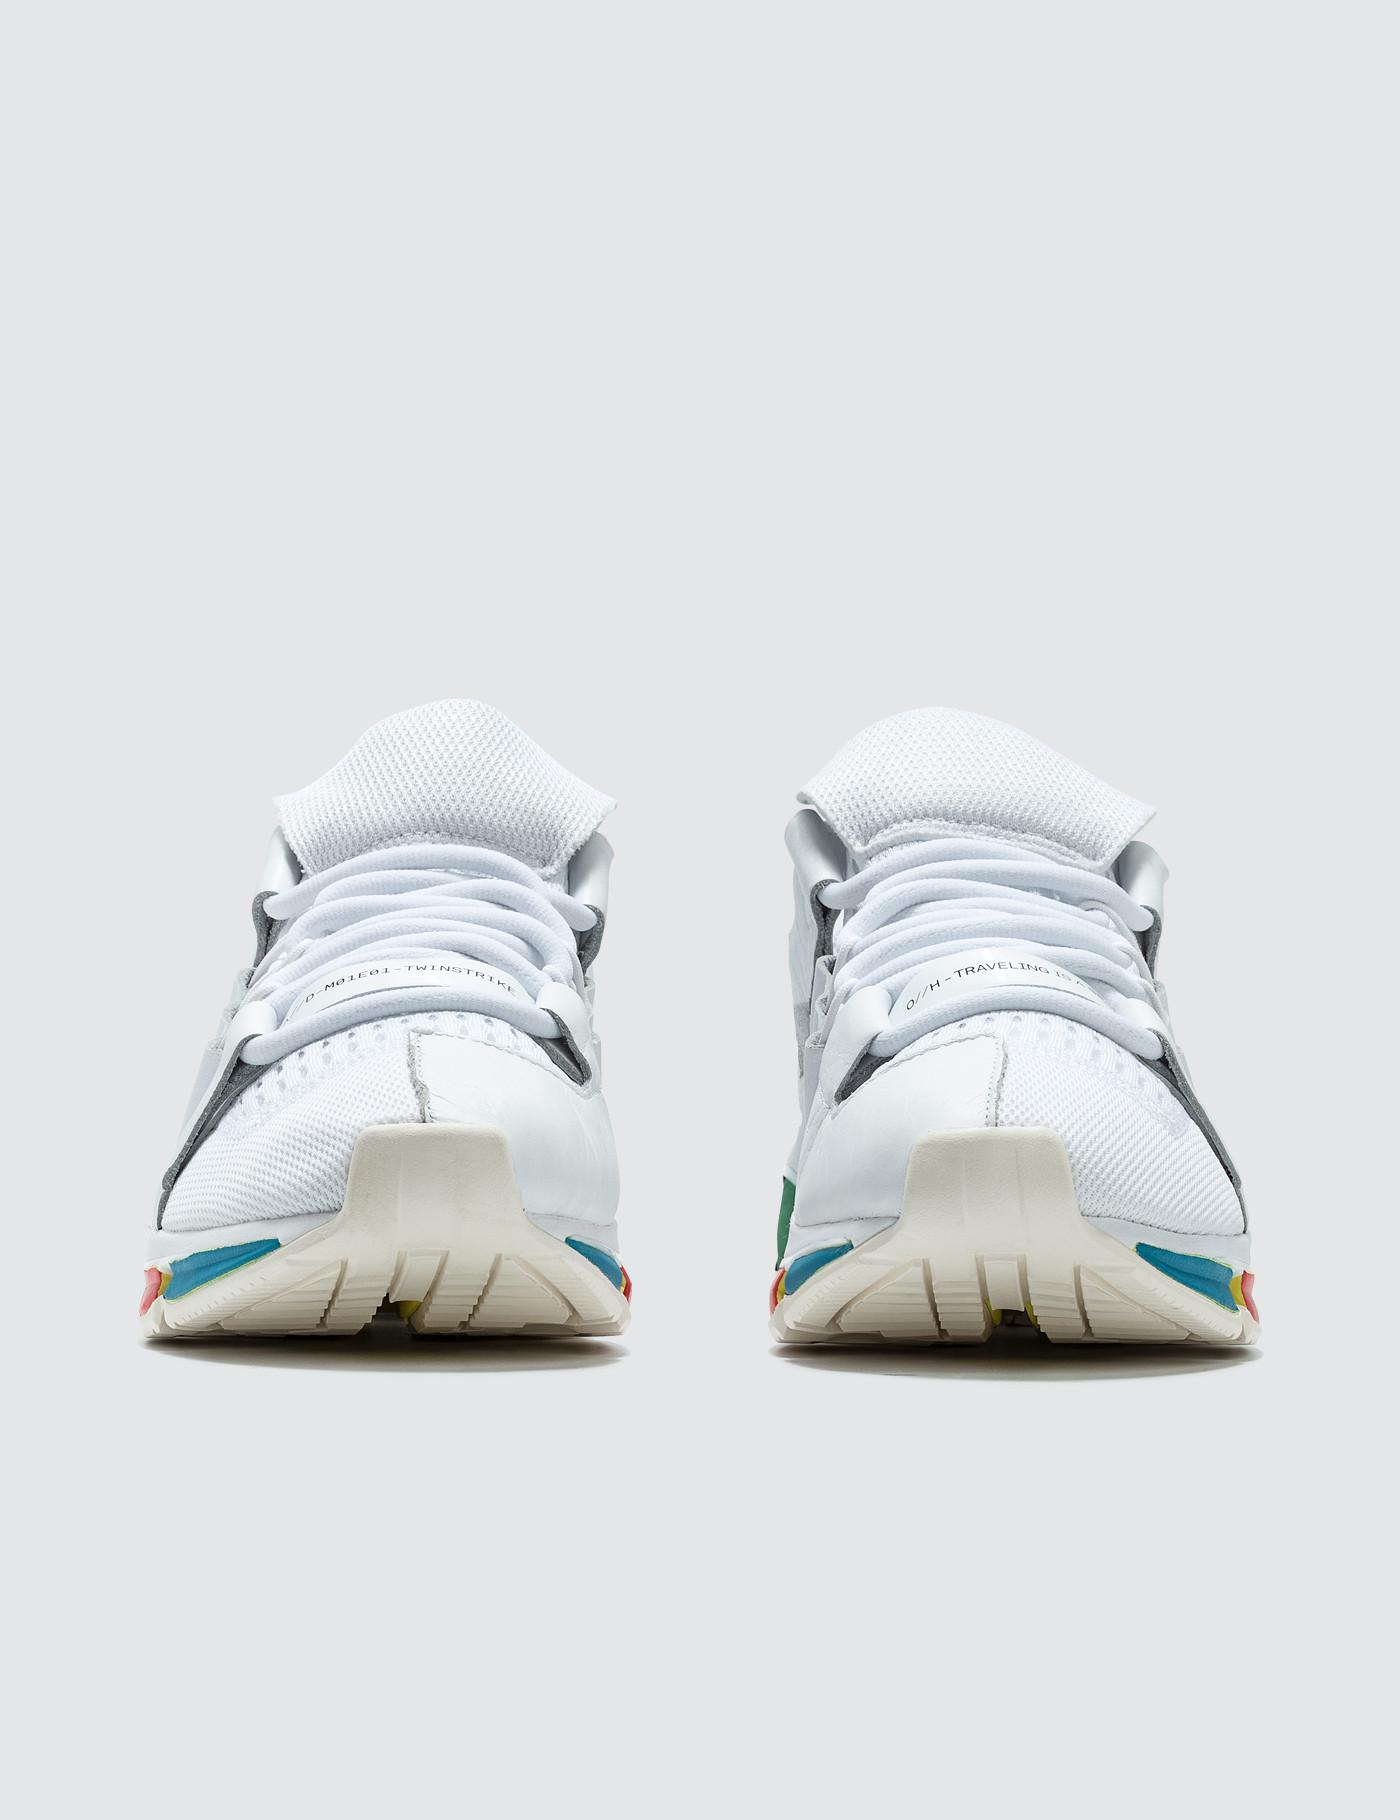 quality design 7a787 fad66 Adidas Originals Oyster X Adidas Twinstrike Adv in White for